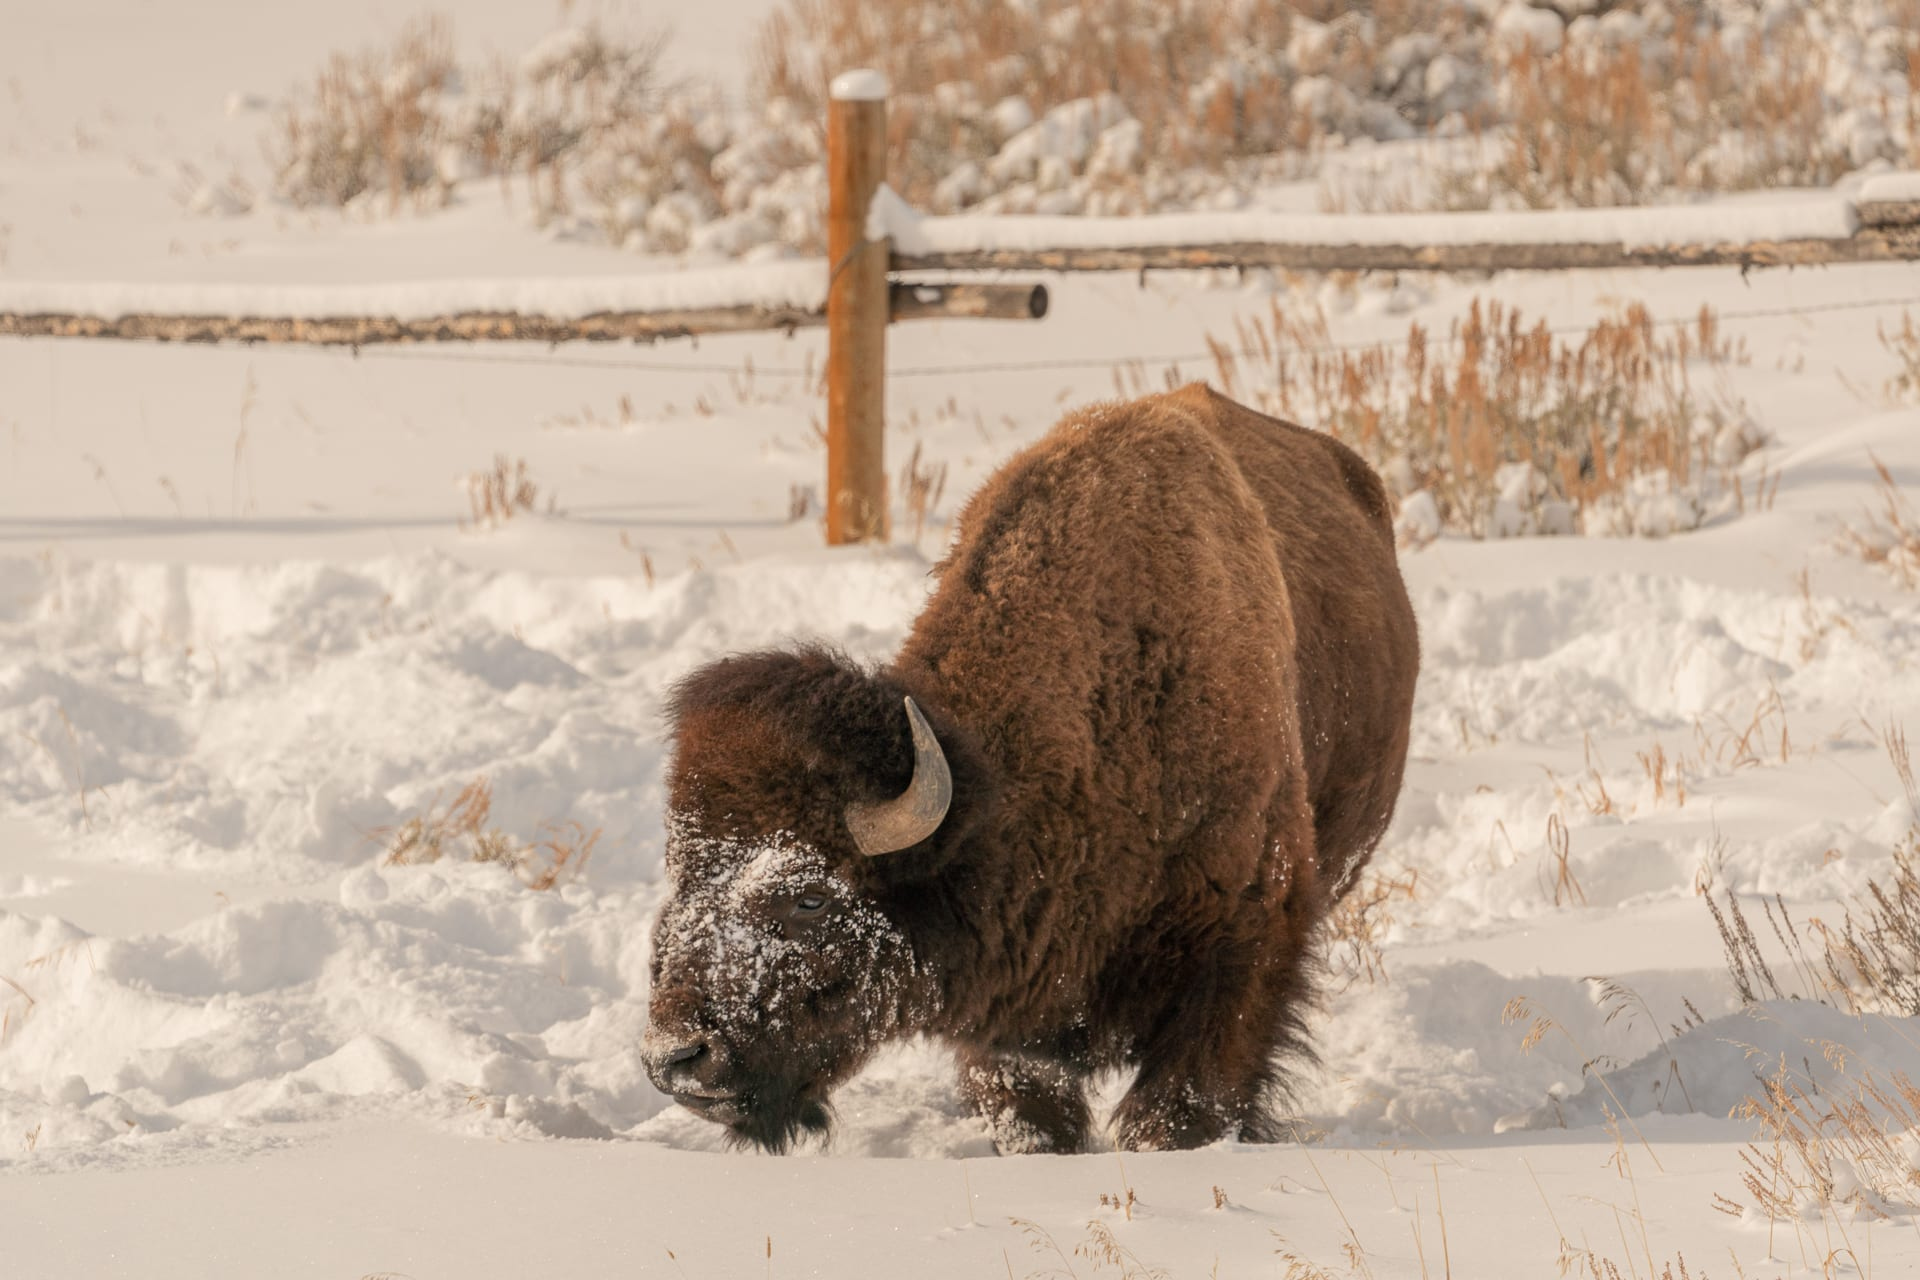 Single bison with snow-crusted face.